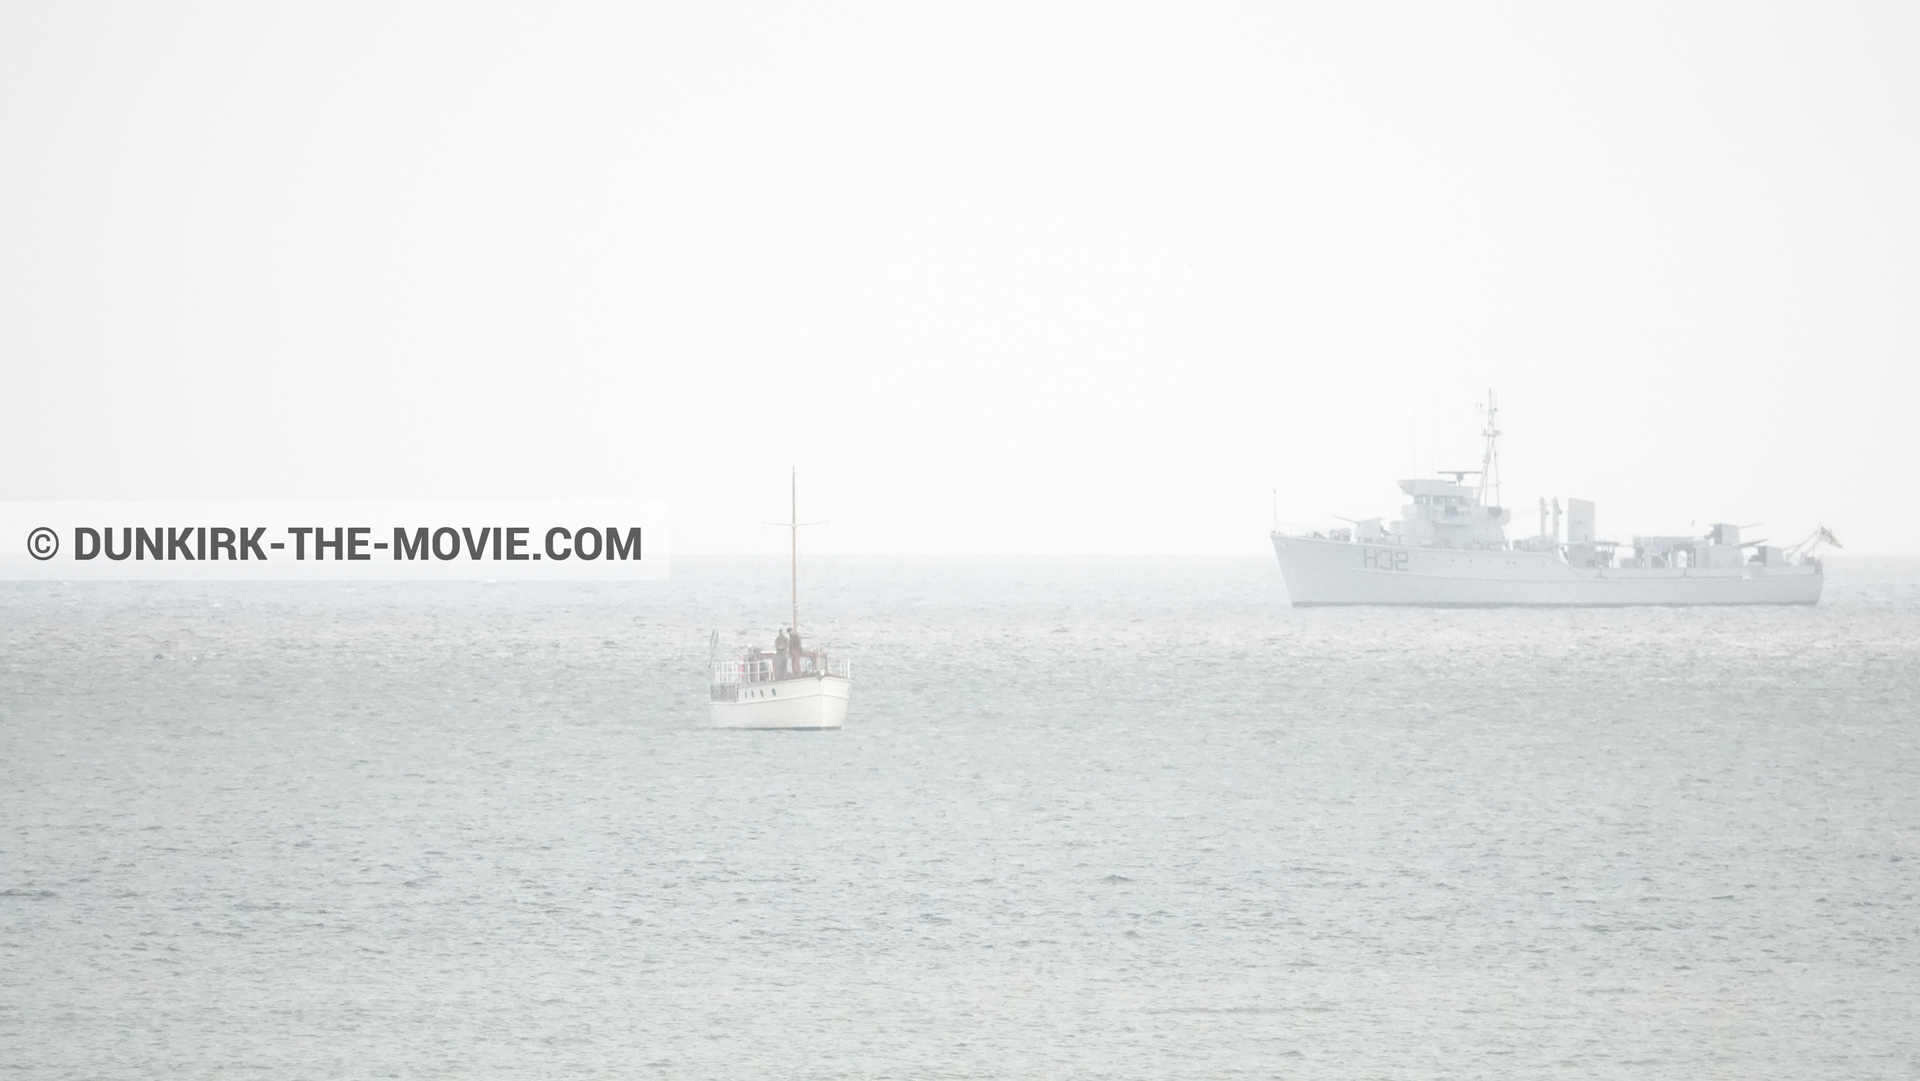 Picture with boat, H32 - Hr.Ms. Sittard,  from behind the scene of the Dunkirk movie by Nolan